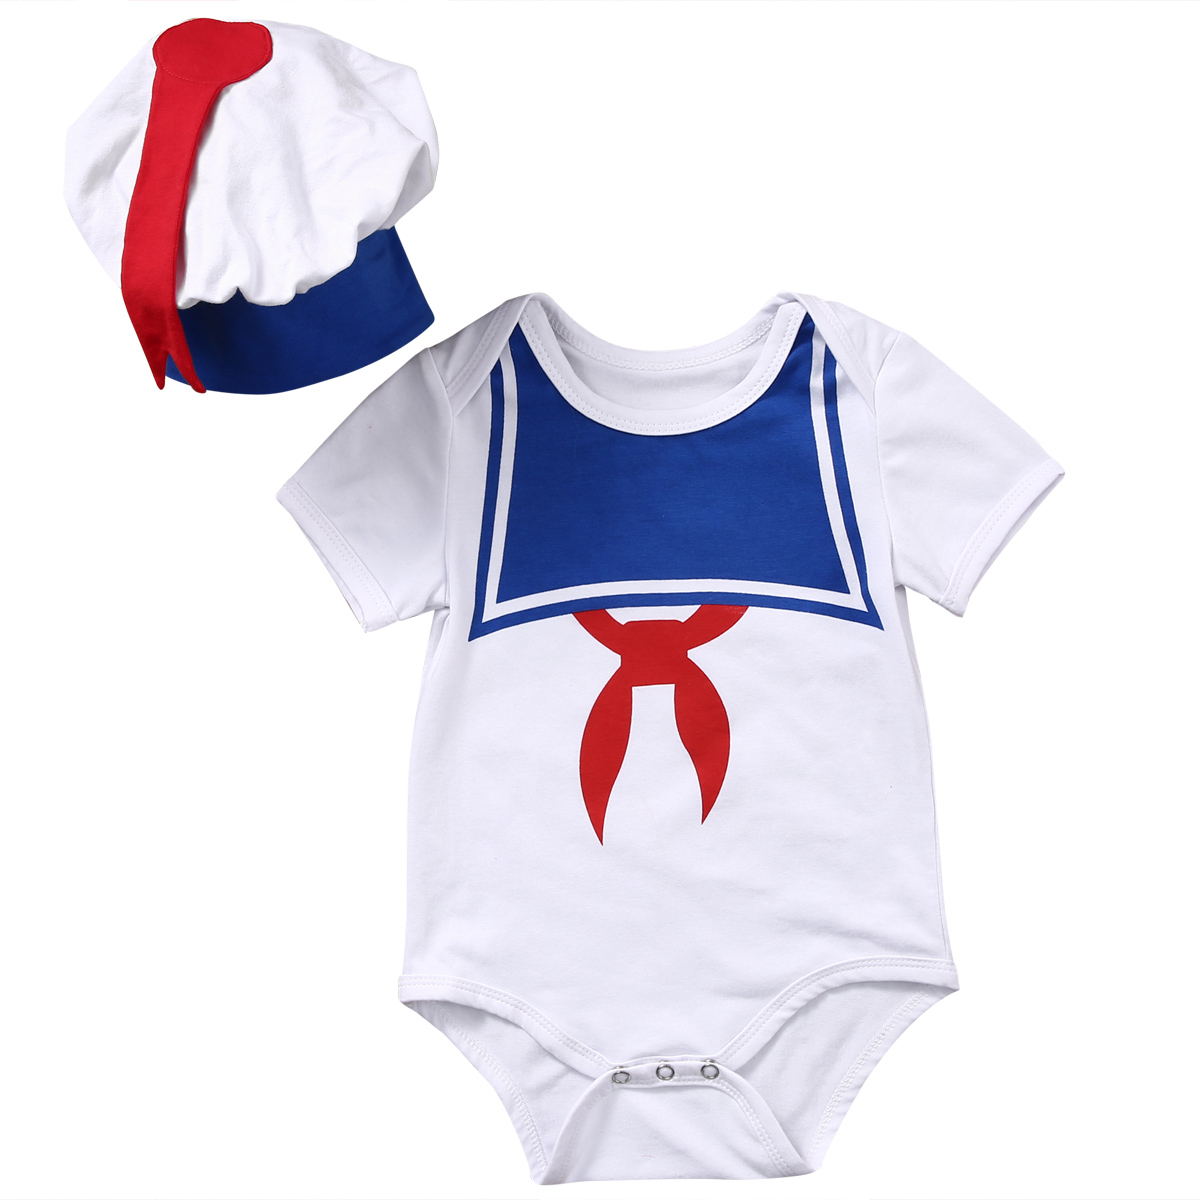 2pcs Newborn Baby Girls Boys Clothes Navy style Short Sleeve   Romper   Jumpsuit Hat Sailor Outfits